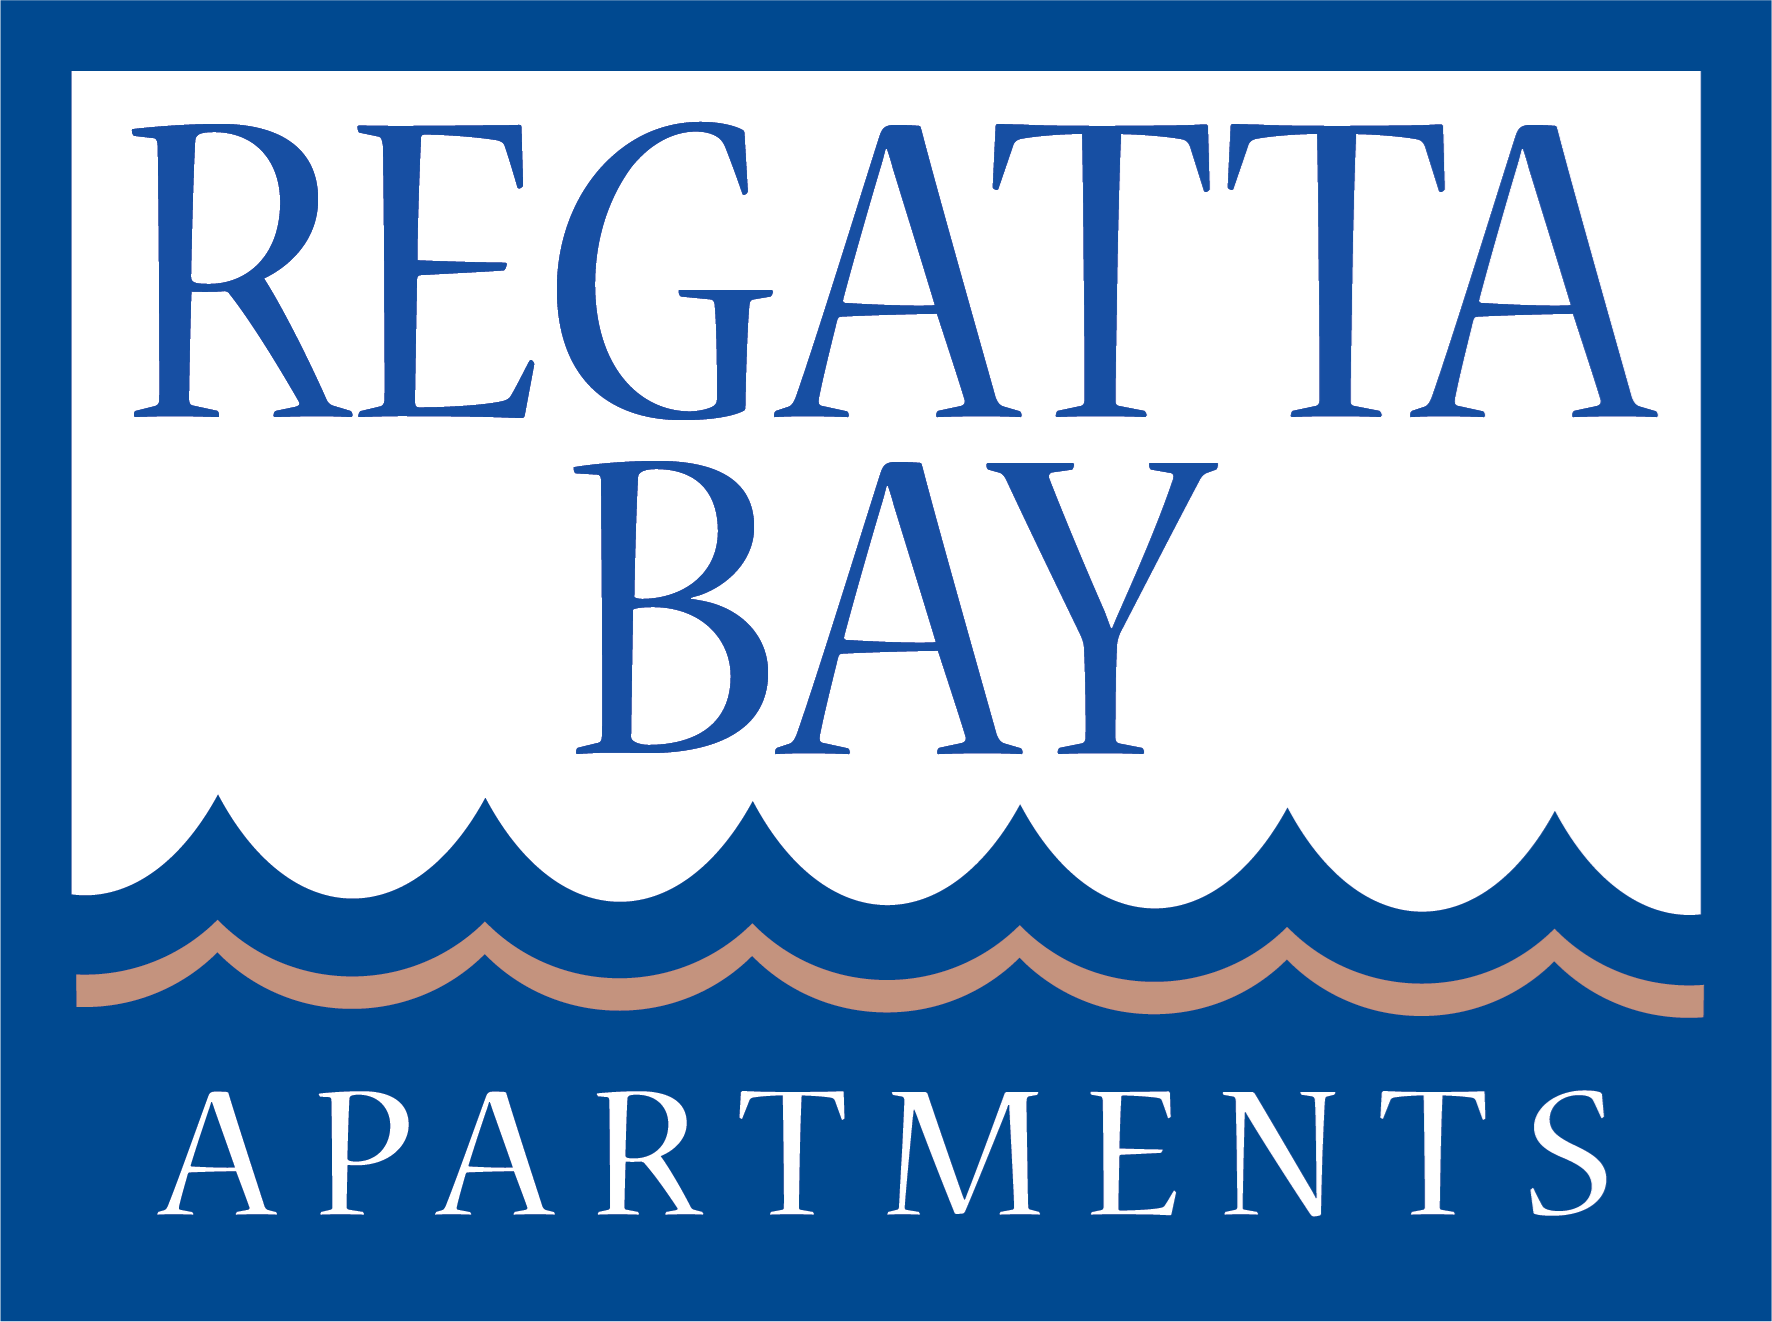 Regatta Bay Apartments for rent in Kissimmee, FL. Make this community your new home or visit other ConcordRENTS communities at ConcordRENTS.com. Logo